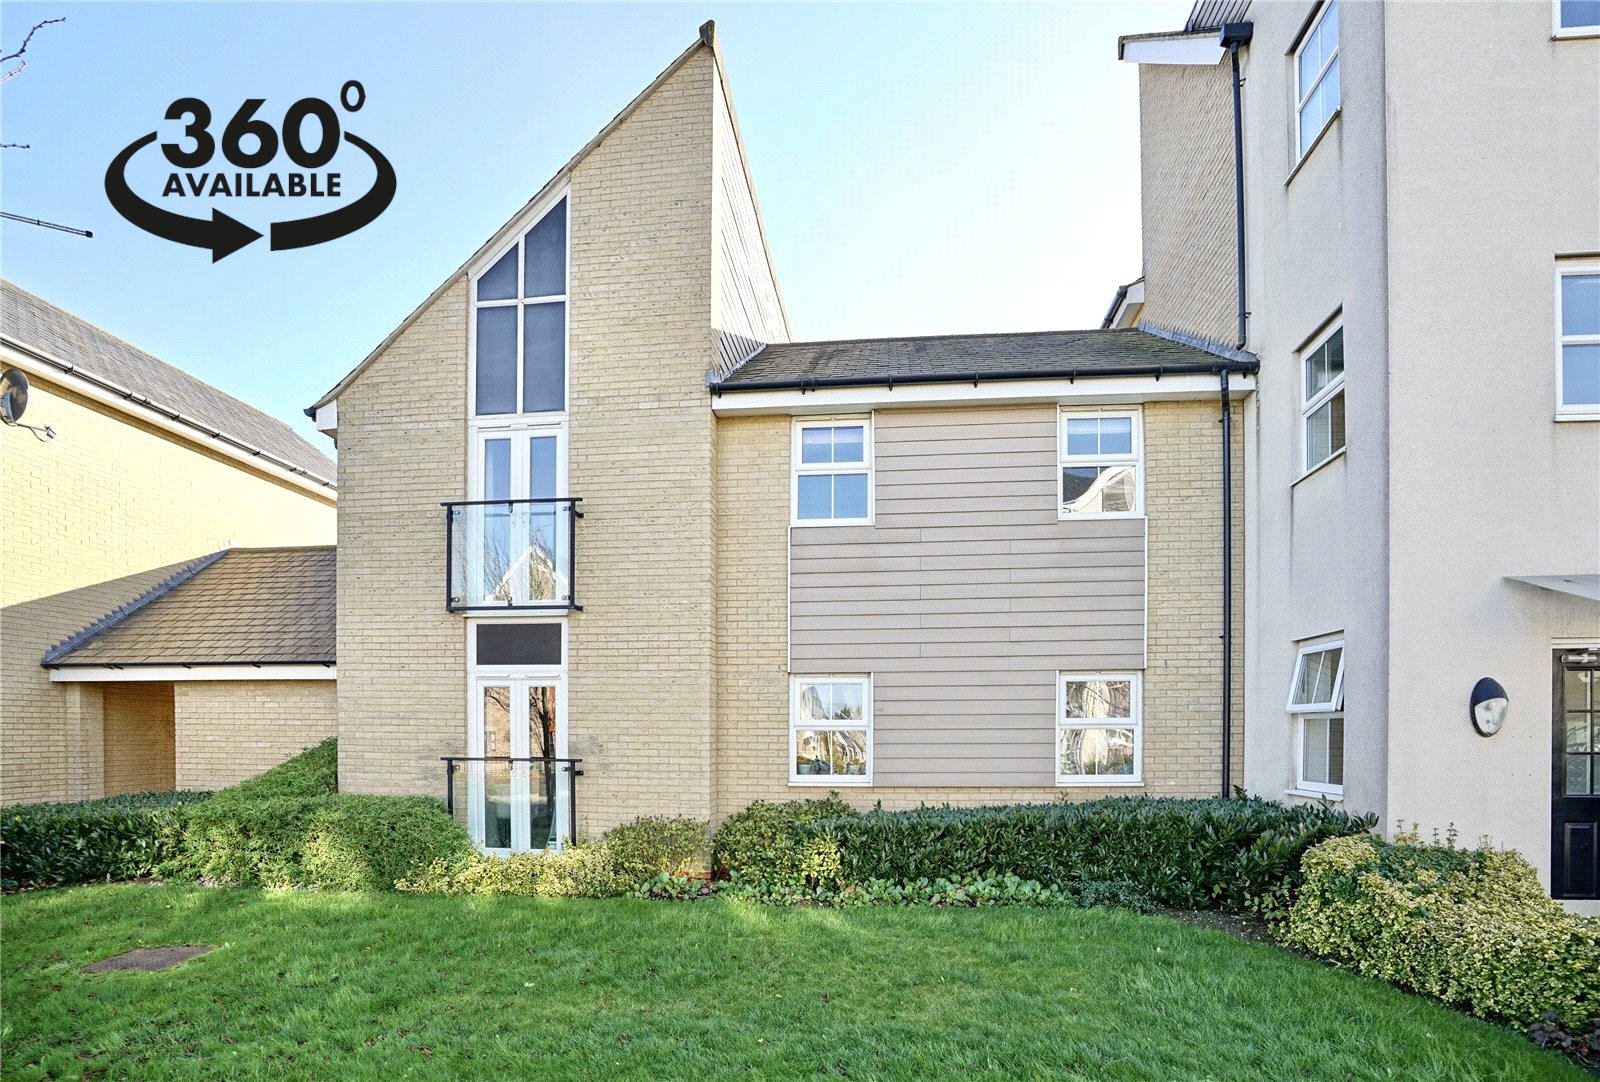 2 bed apartment for sale in St Neots, PE19 6AA, PE19